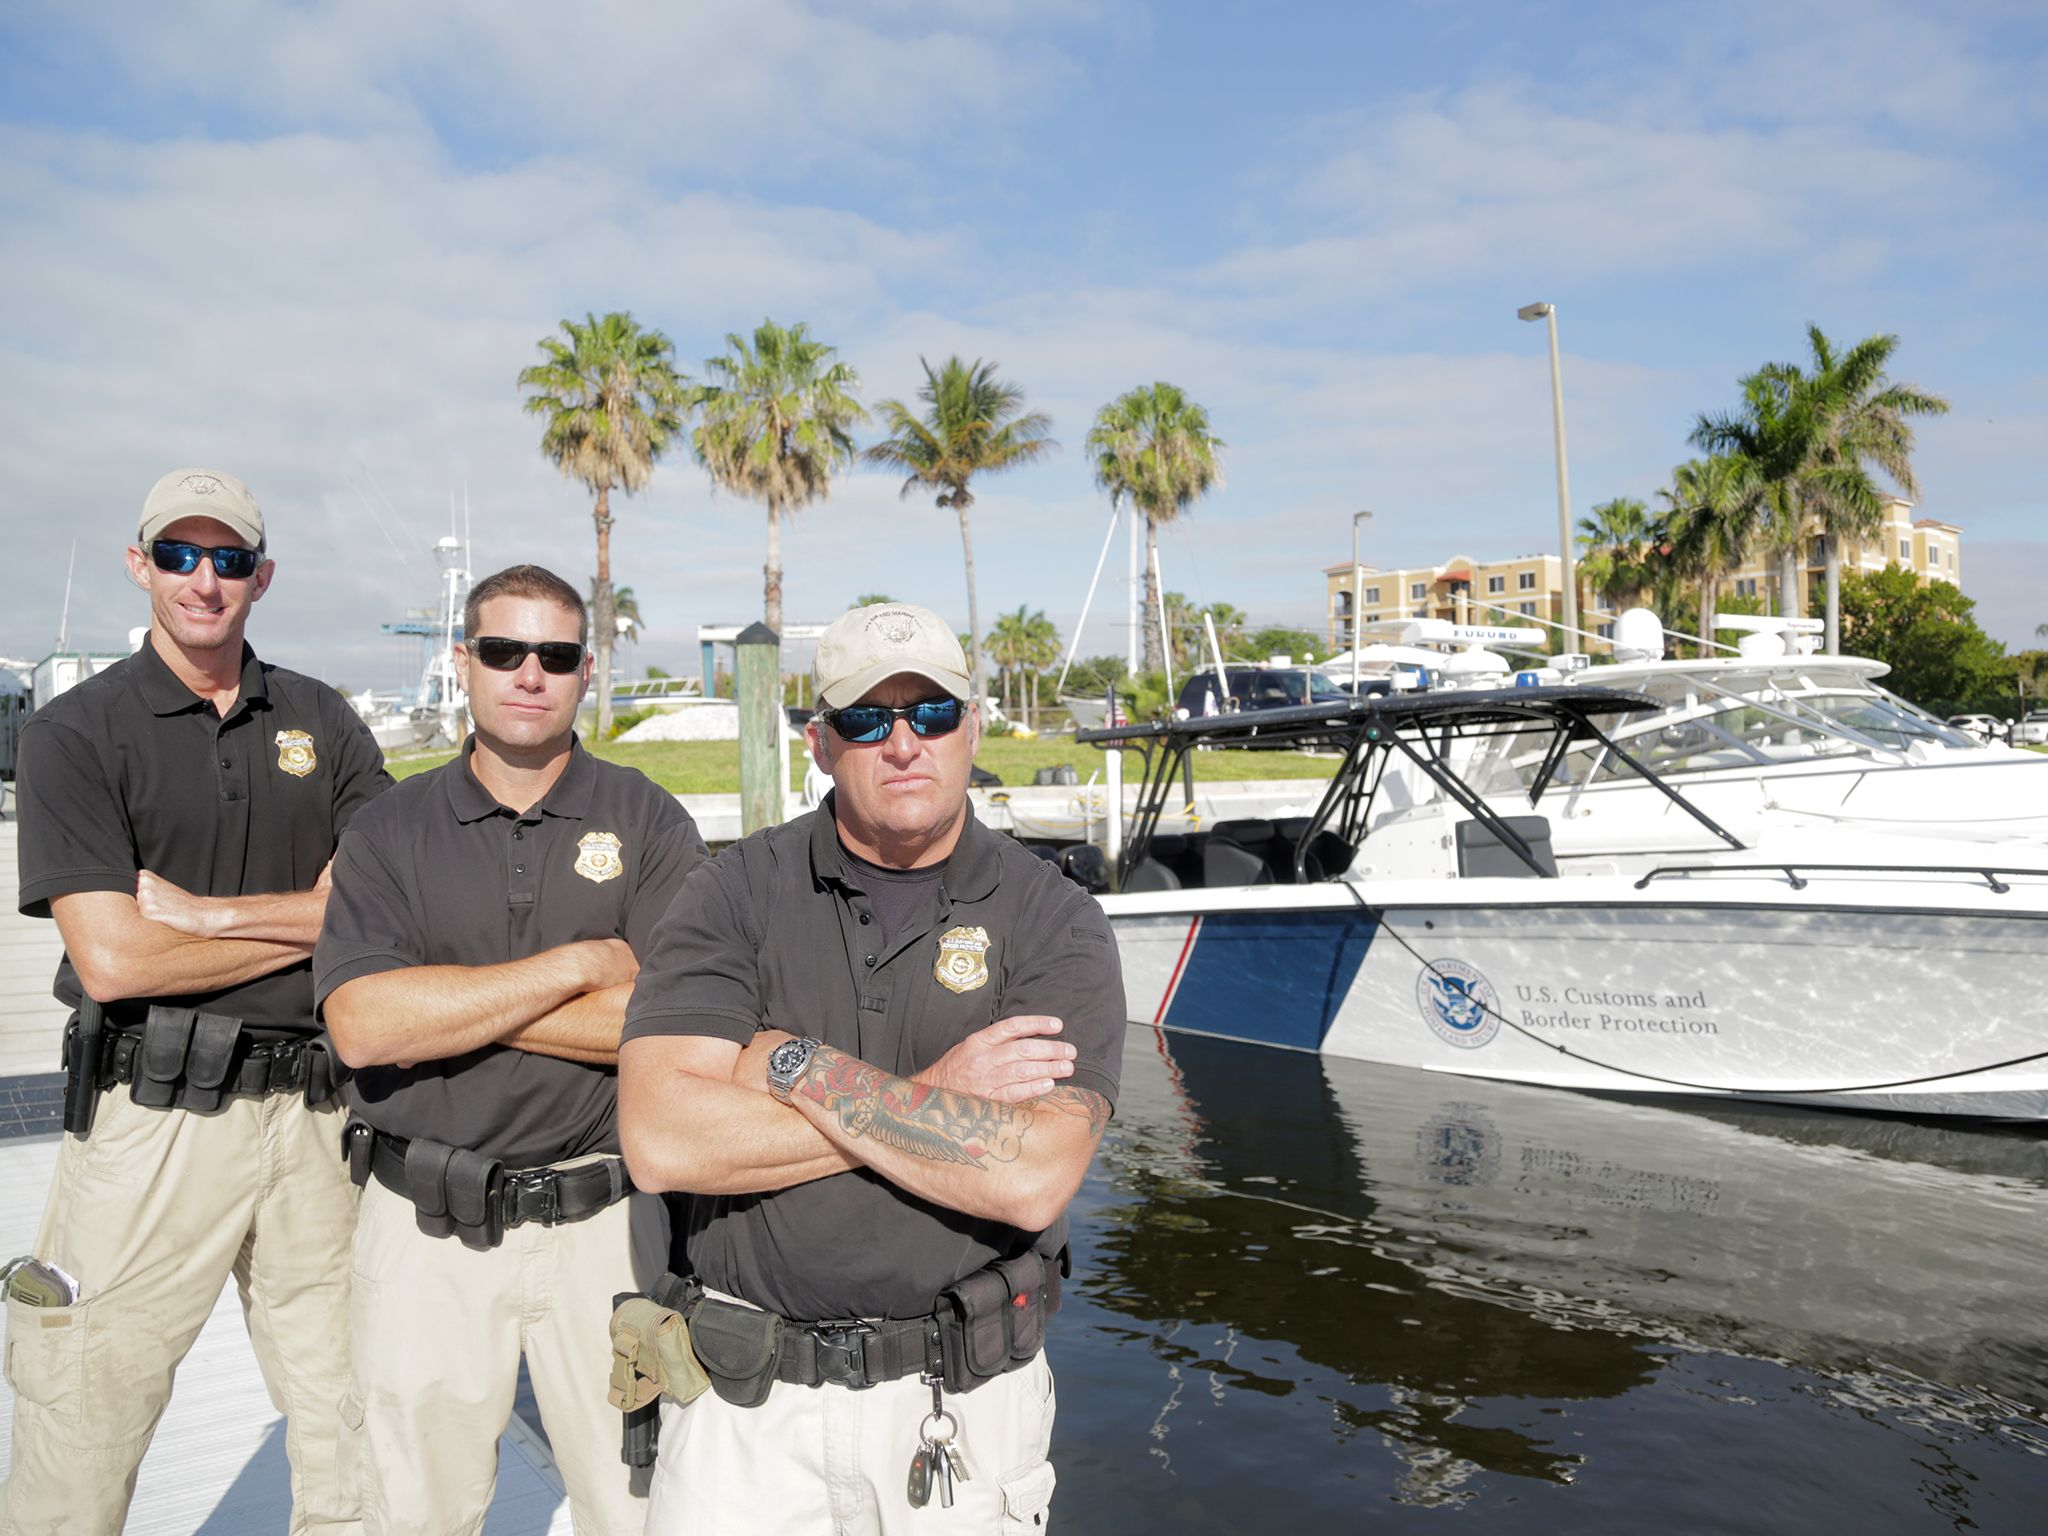 West Palm Beach, Fla.: Jack Creaig Custom Border Protection Commander and crew by their boat in W... [Photo of the day - January 2015]